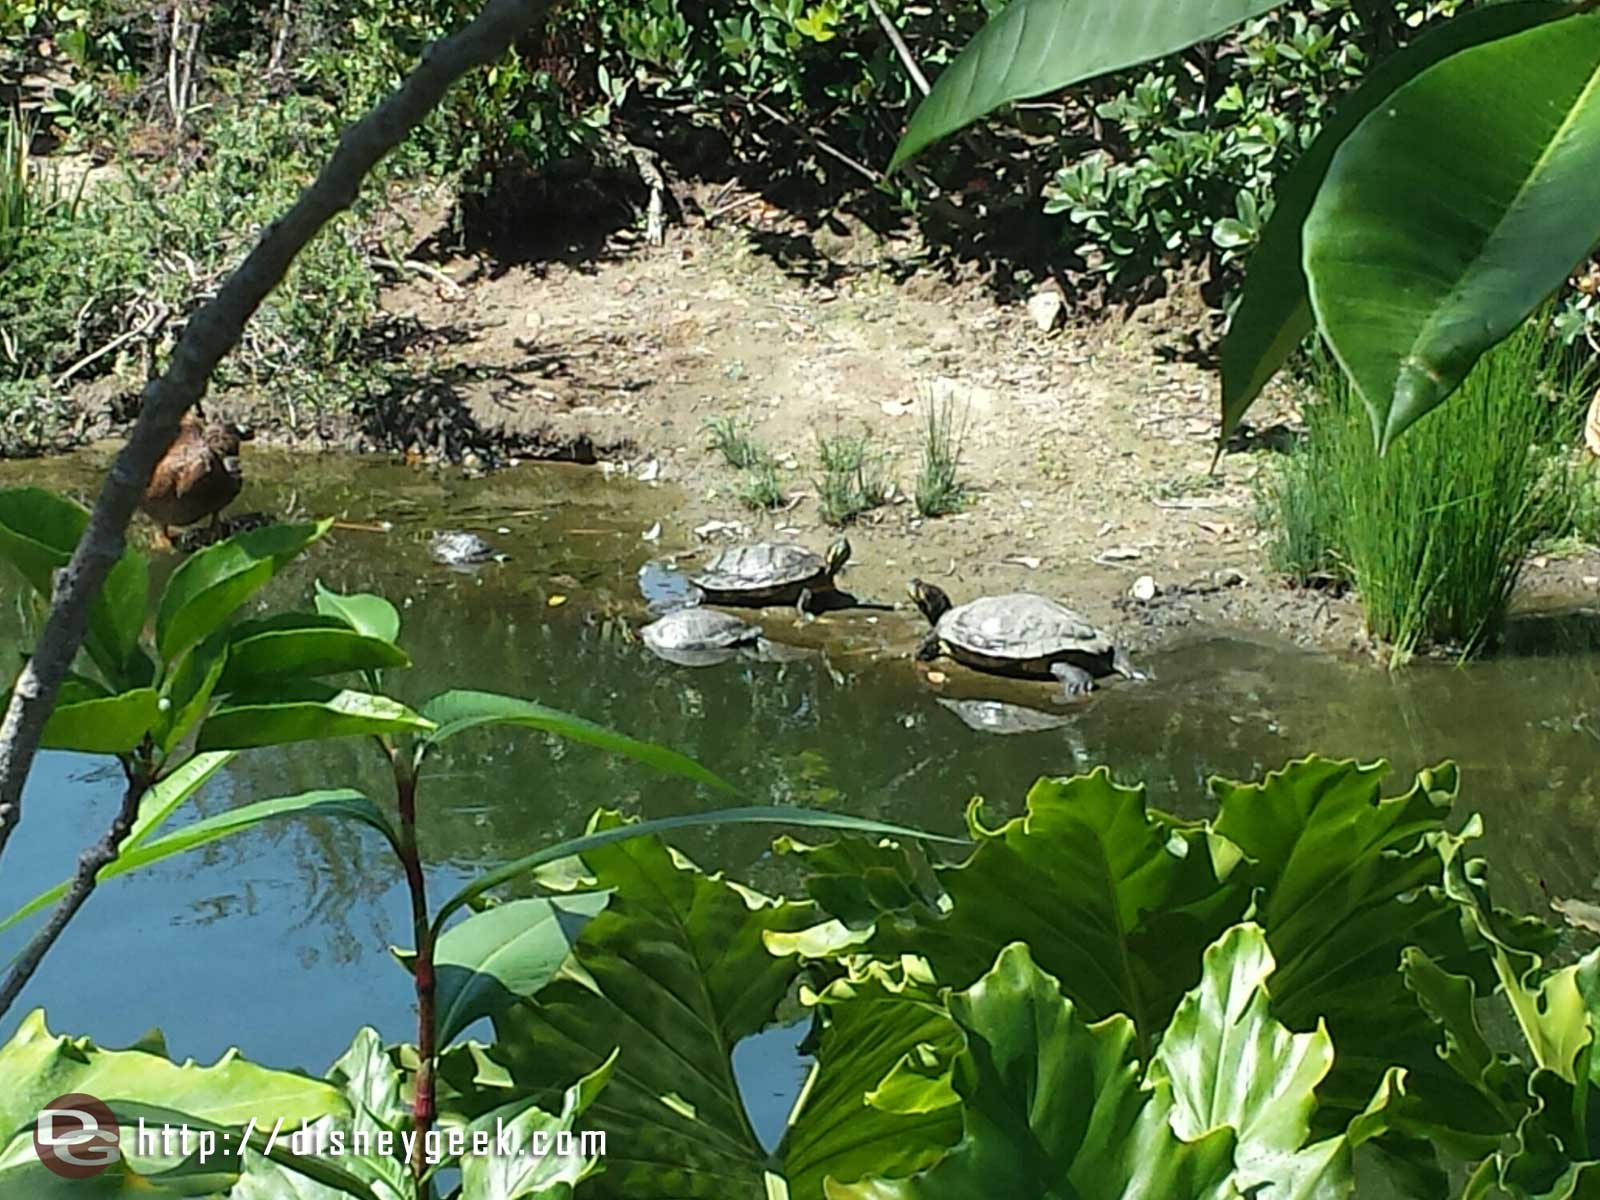 A family of turtles between Adventureland and Frontierland